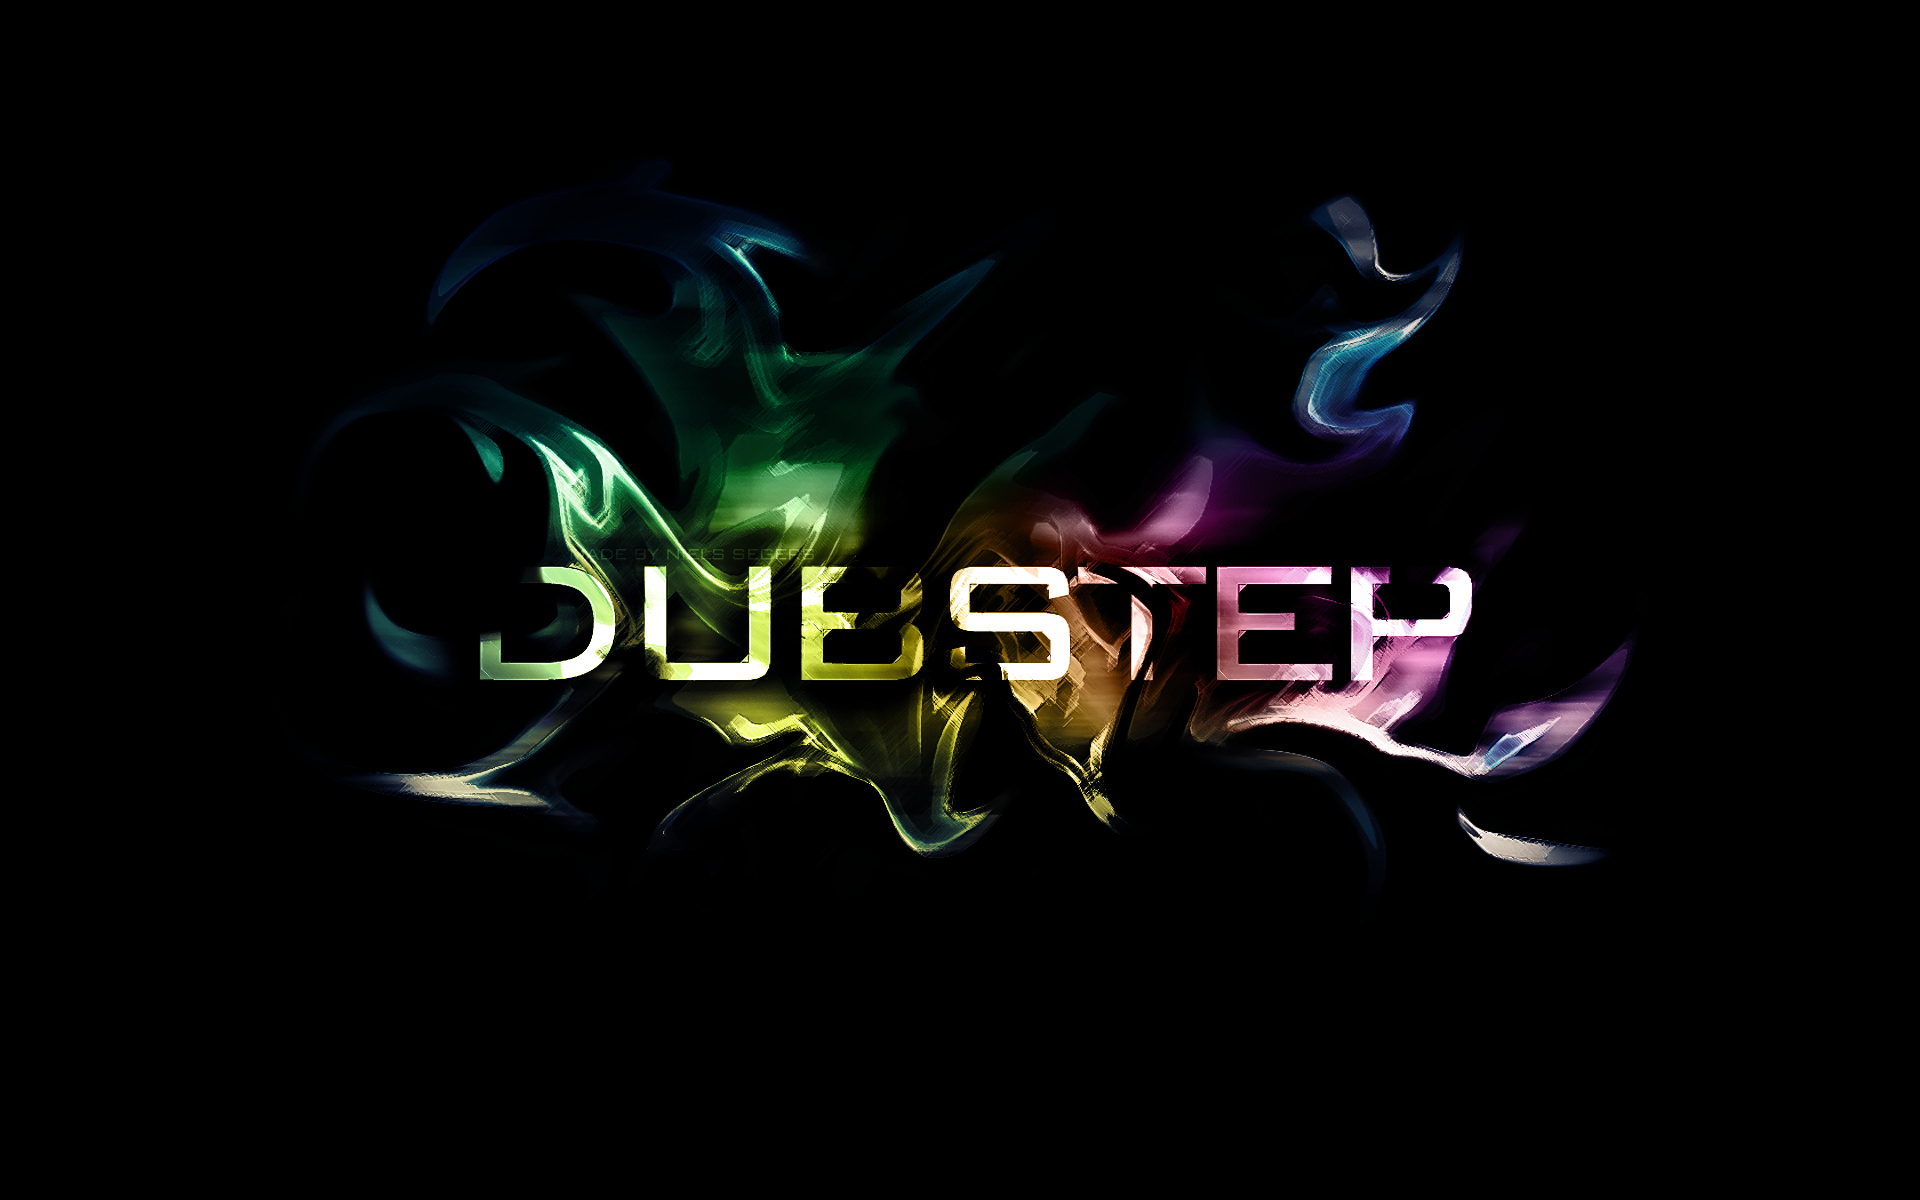 Dubstep Wallpaper Hd 1080P 1920x1080. 398. dubstep_hd_wallpaper_by_harrii_xl-d365o4f.jpg